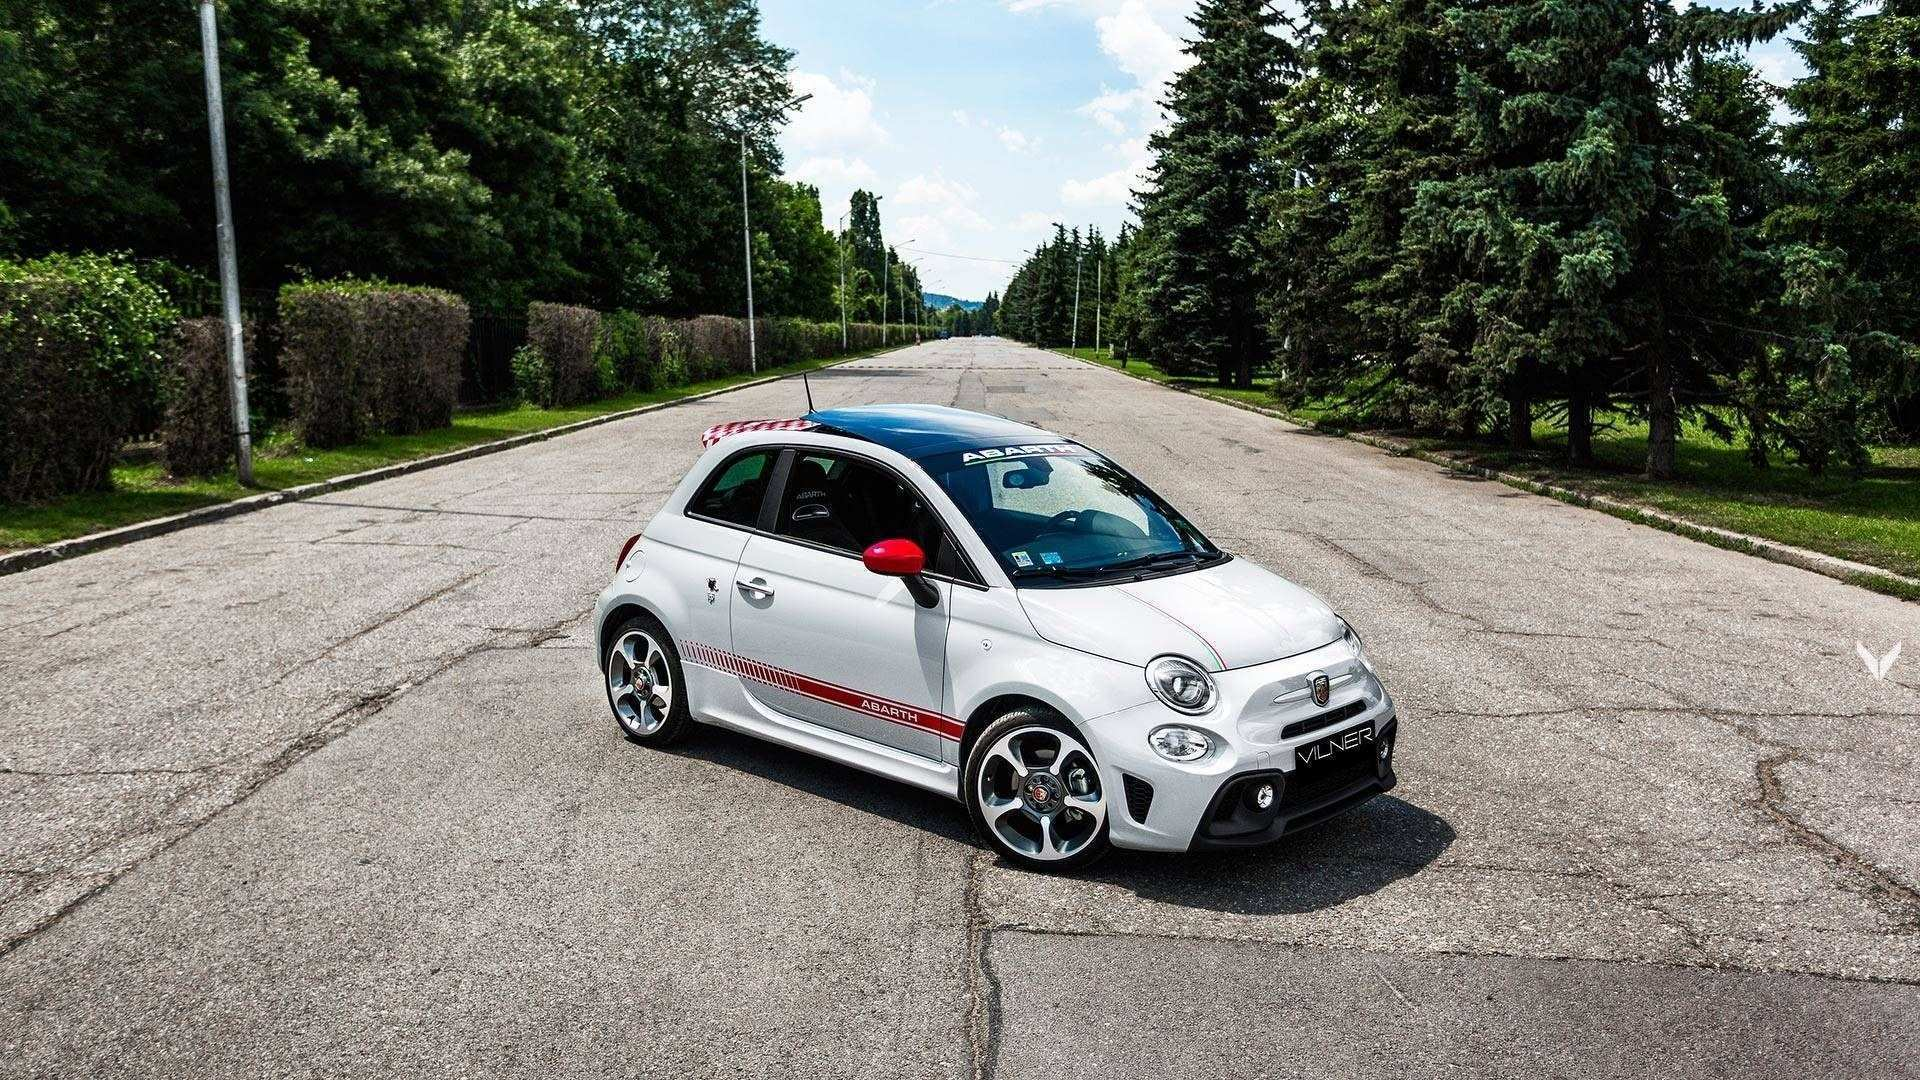 46 Best Review 2020 Fiat 500 Abarth New Review for 2020 Fiat 500 Abarth